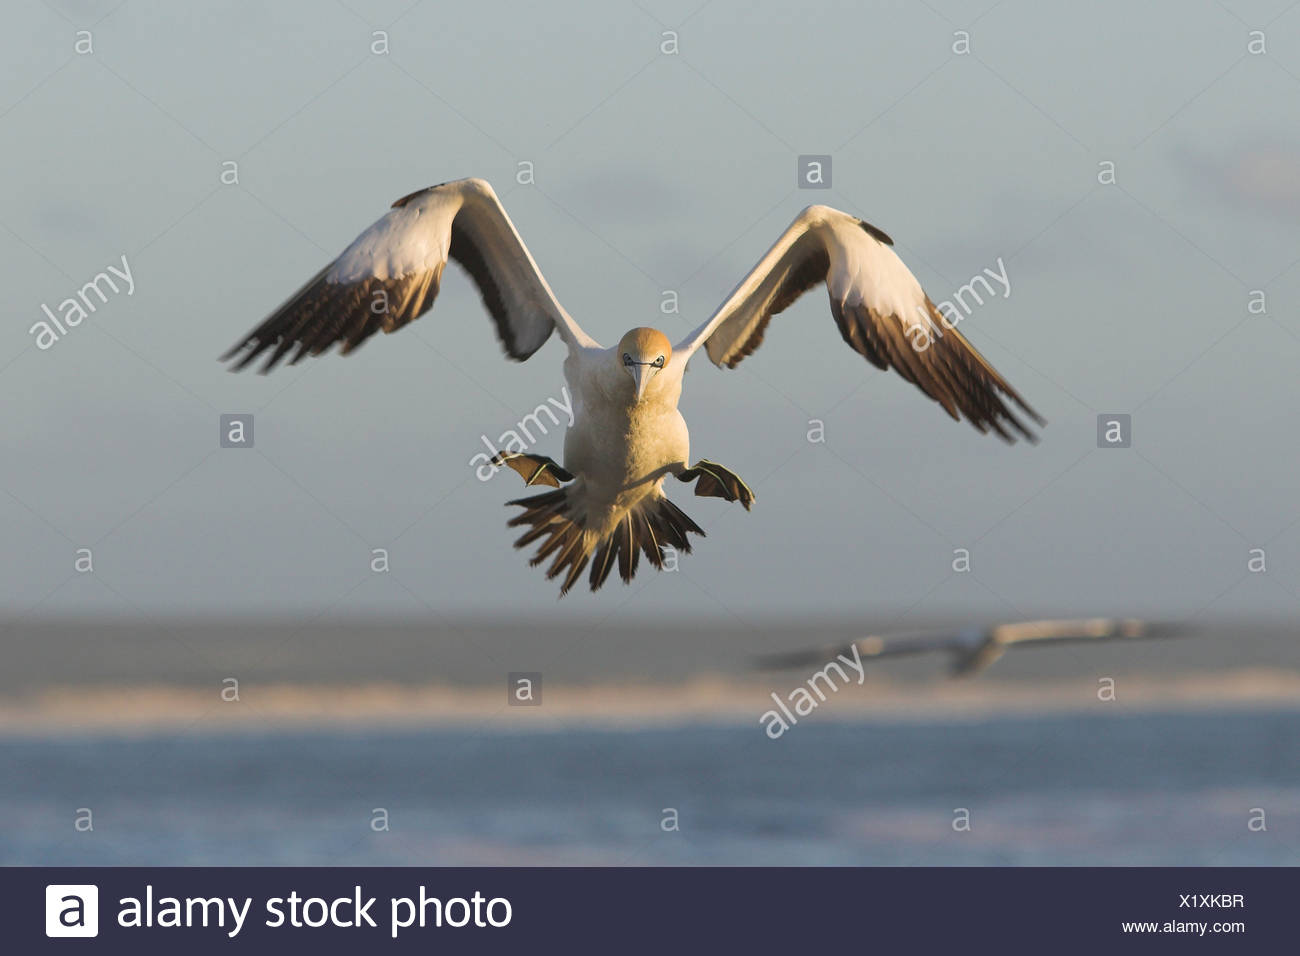 Cape gannet (Morus capensis), landing, South Africa - Stock Image